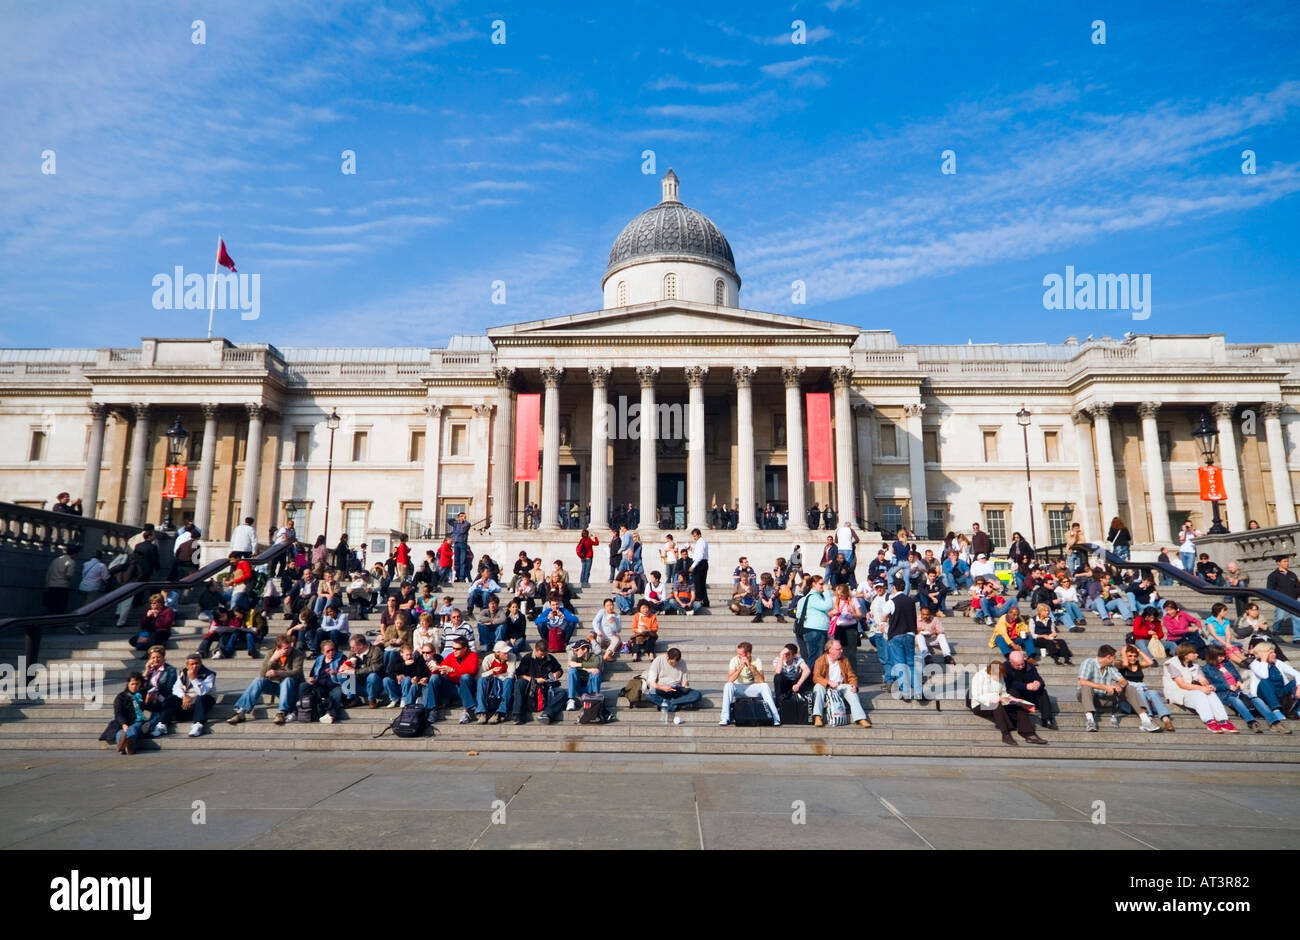 The National Gallery of Great Britain as seen from Trafalgar Square - Stock Image